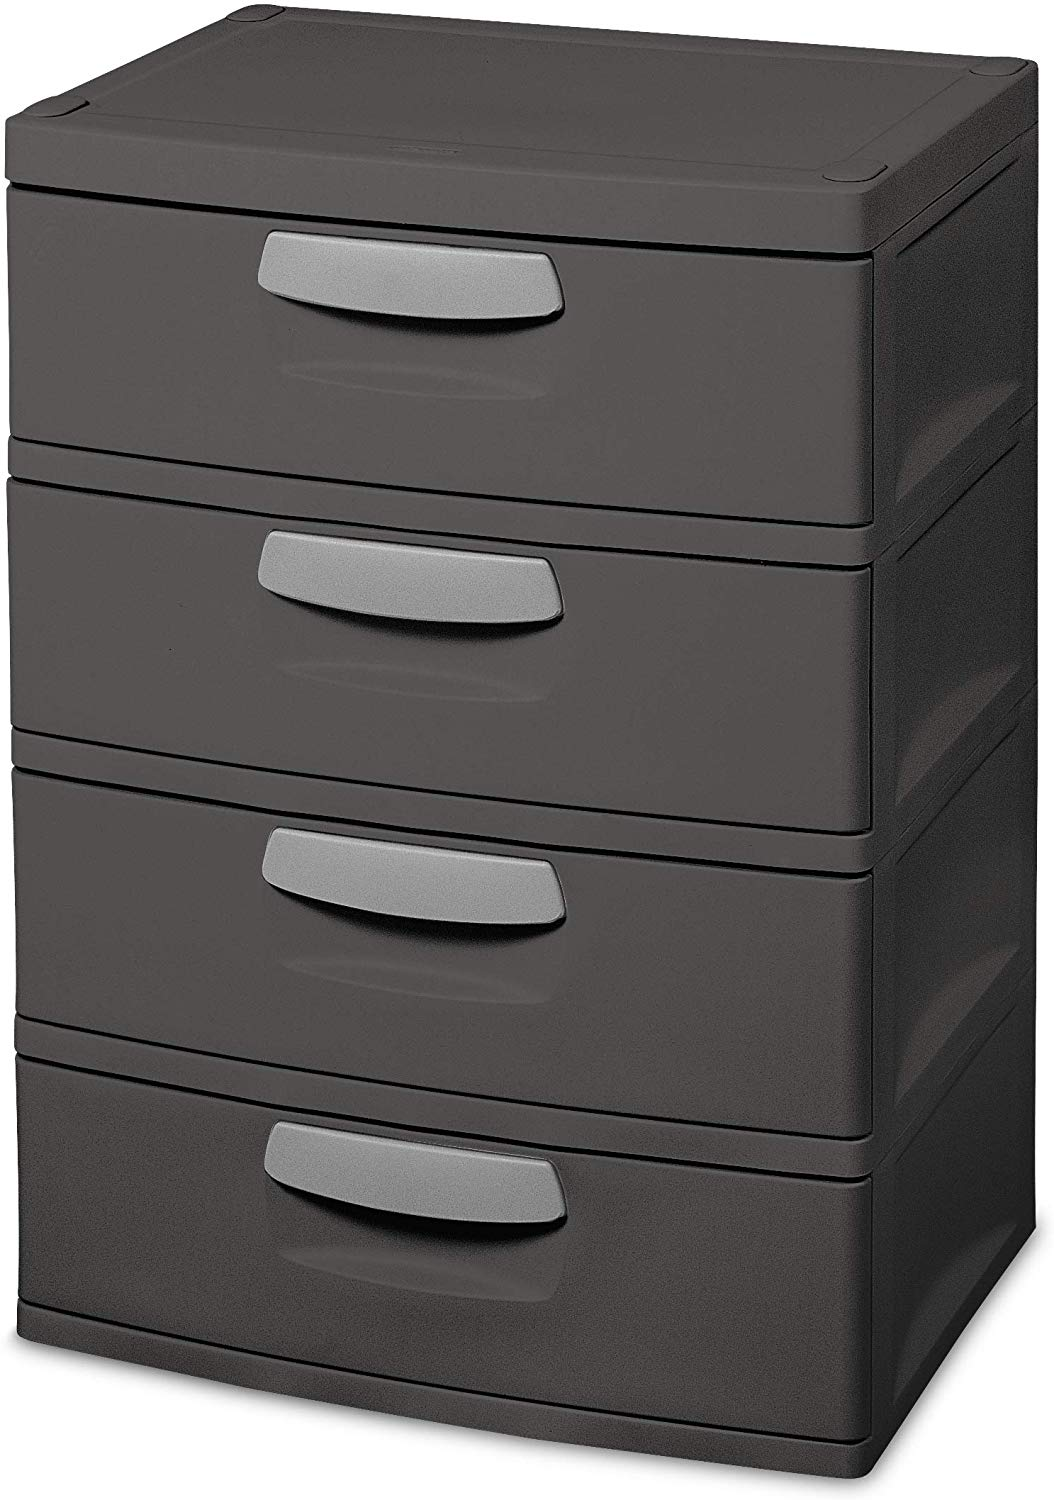 Large 4-Drawer Translucent Chest